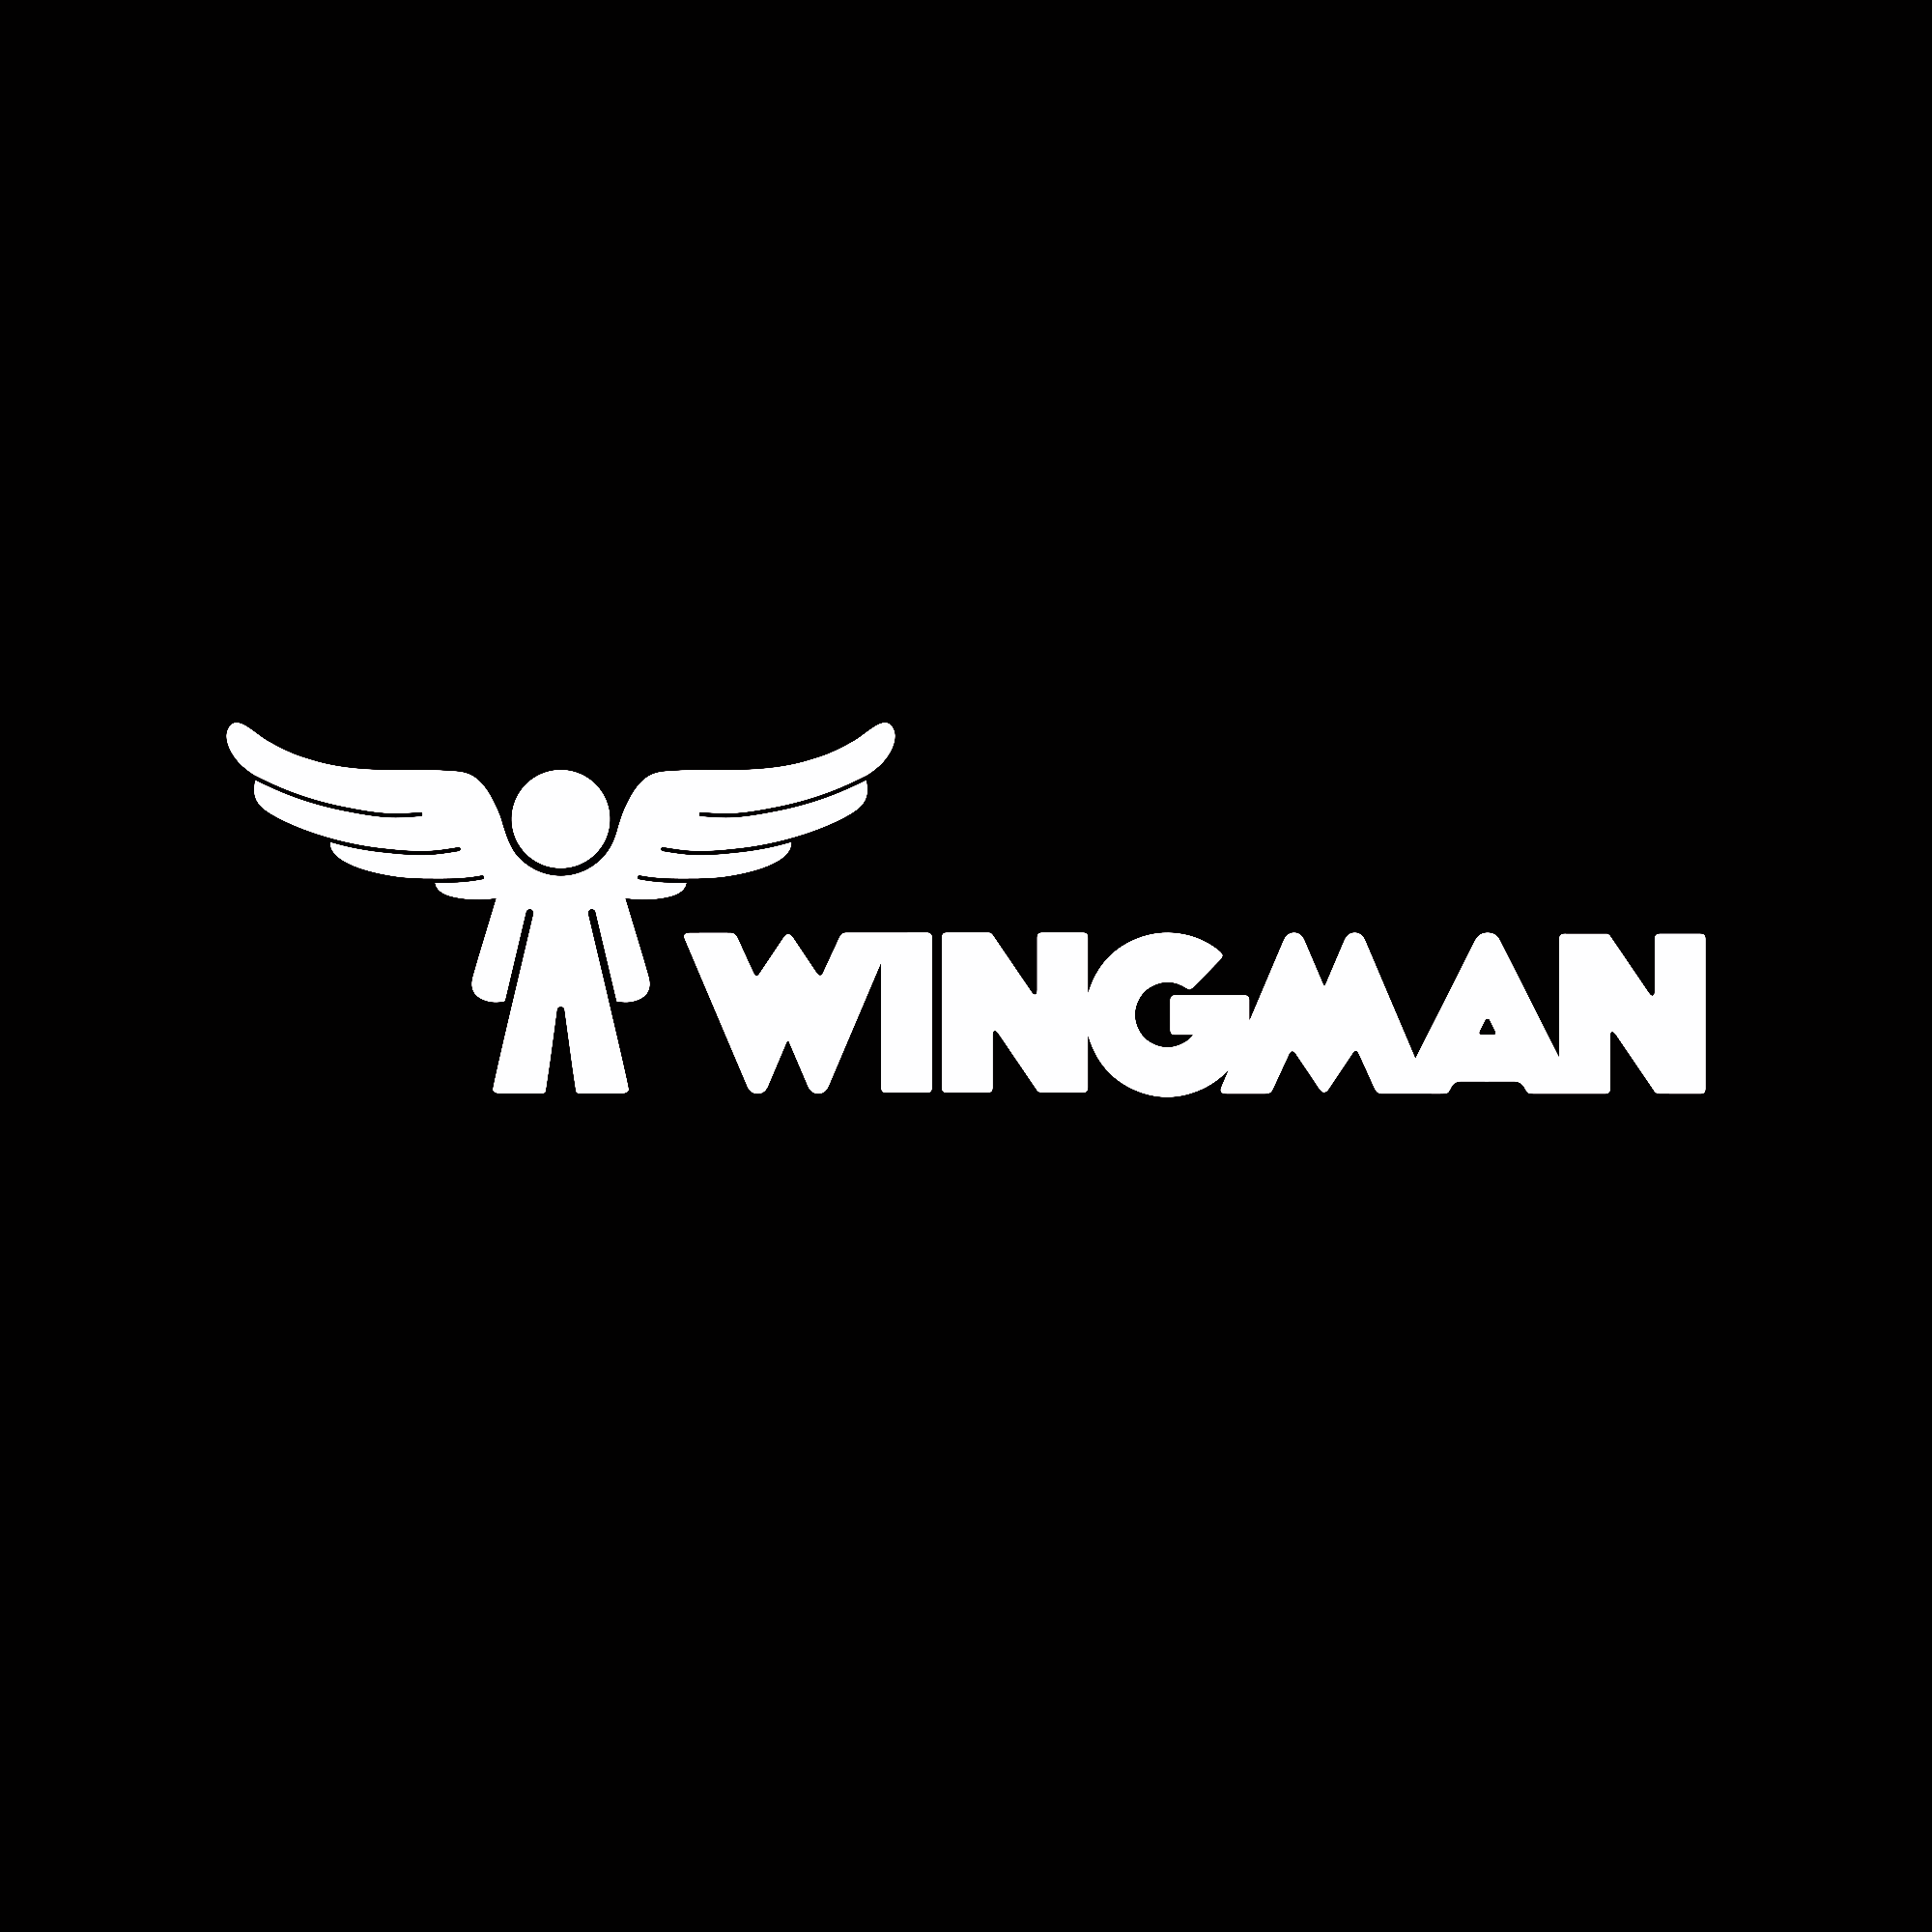 WINGMAN LOGO design